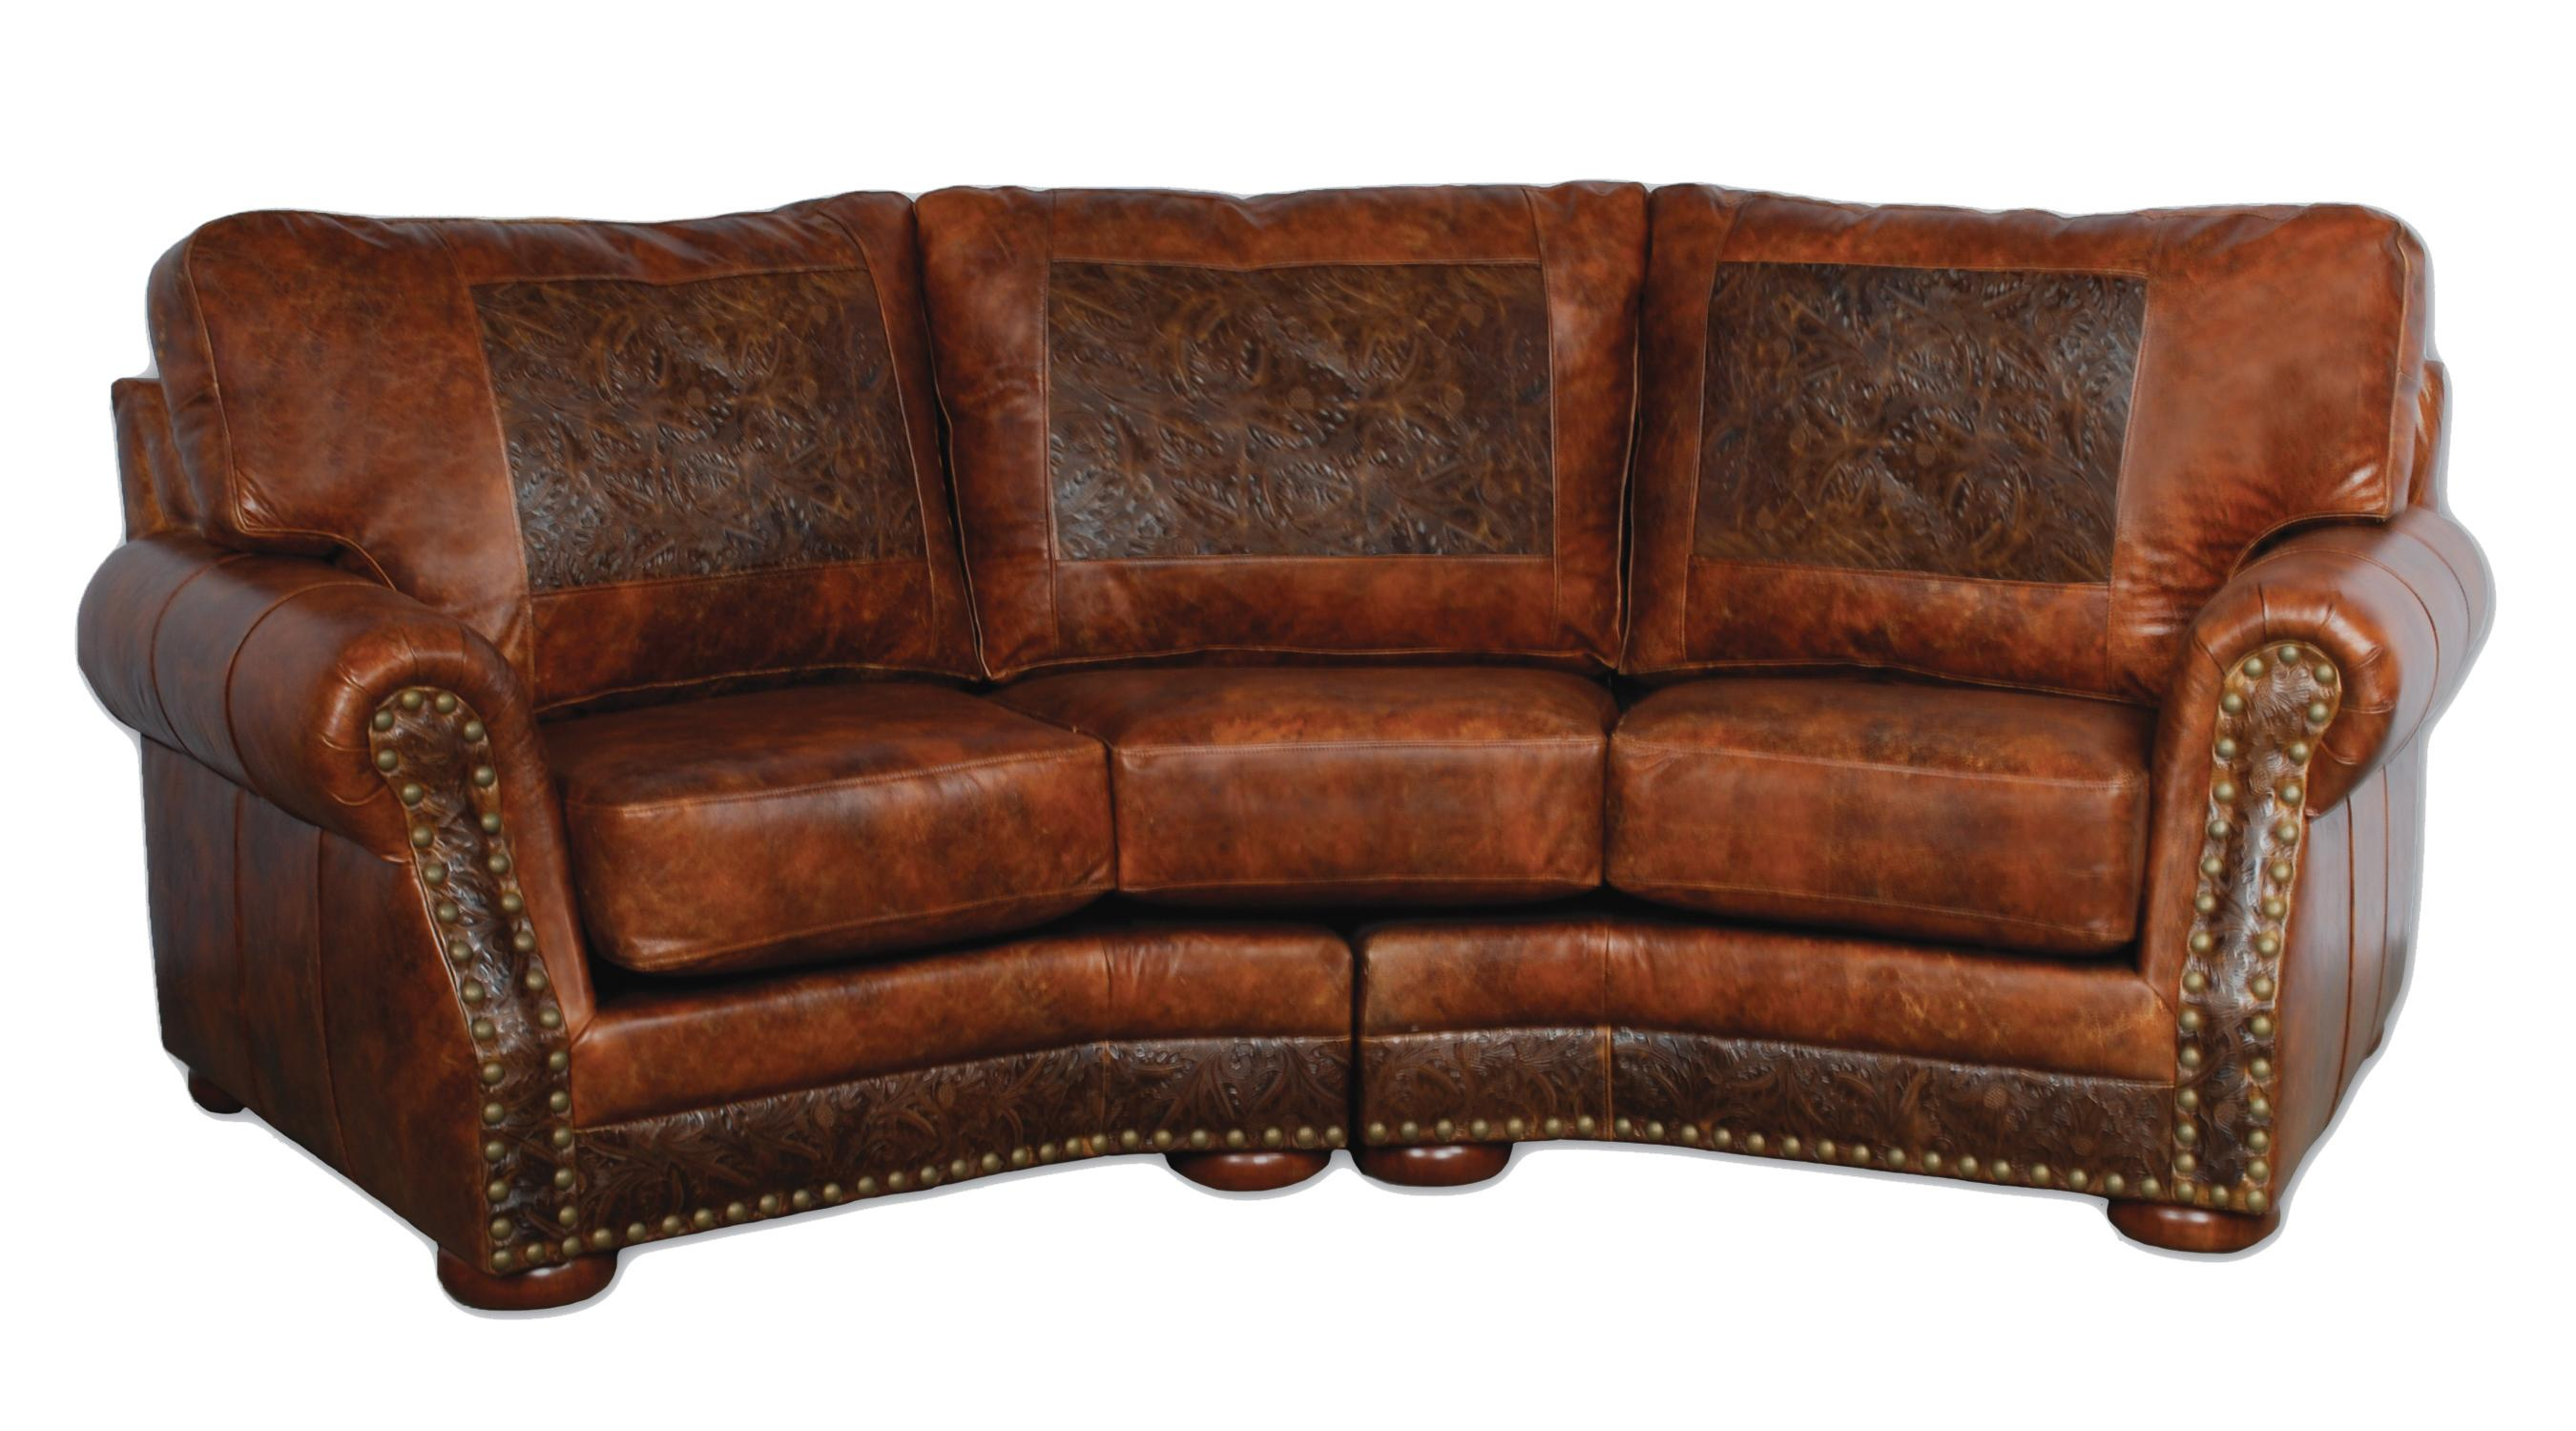 Cameron Ranch Conversation Sofa Antiquity Ember Leather Bean Bag Chair Throughout Cameron Sofa Chairs (Photo 13 of 20)